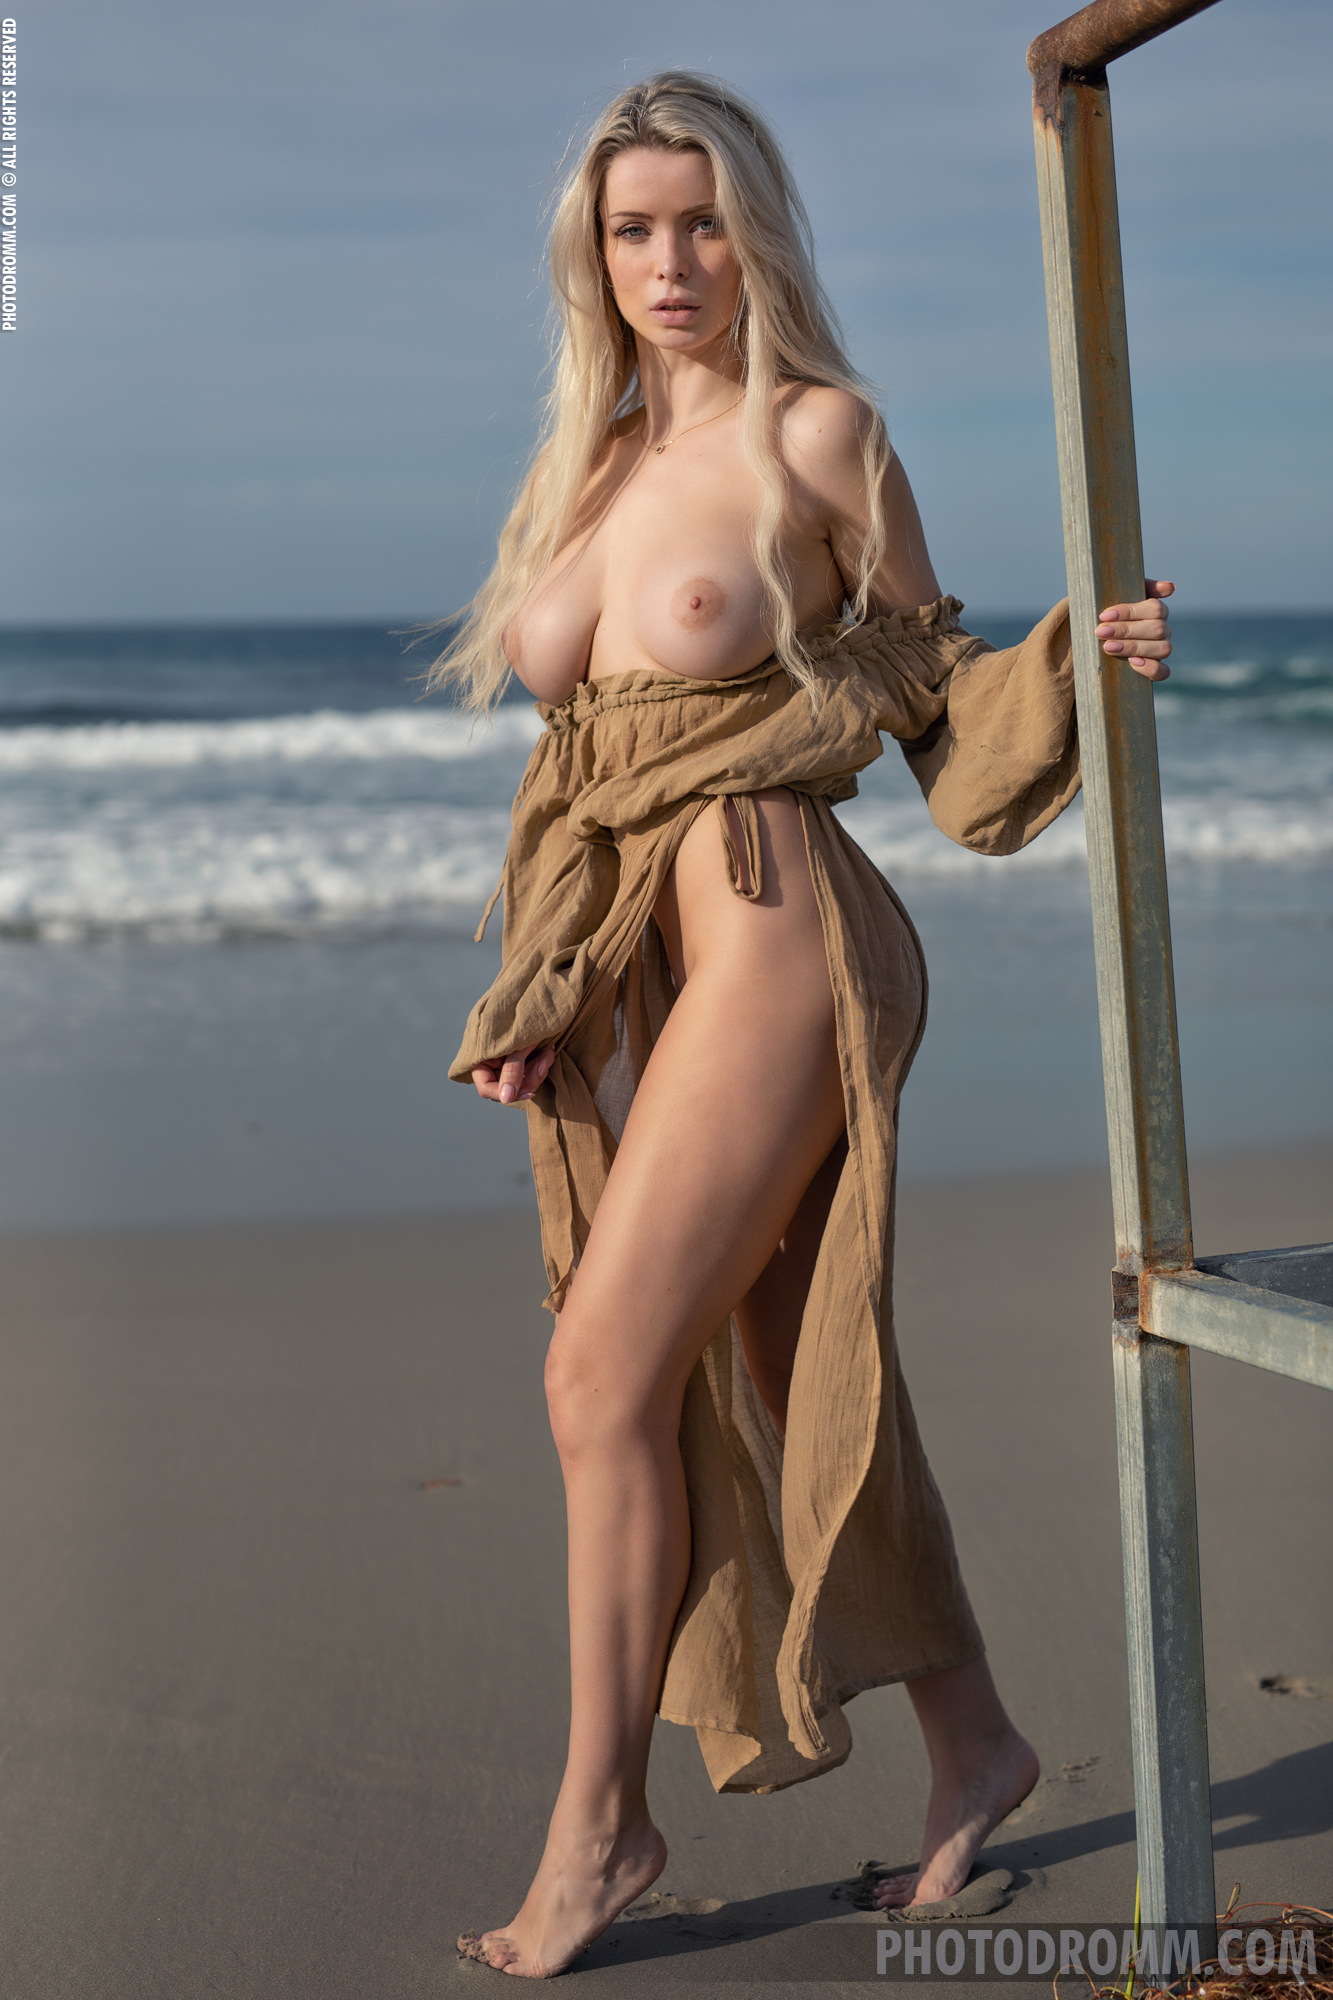 Katya Big Tits Out at the Seaside for Photodromm